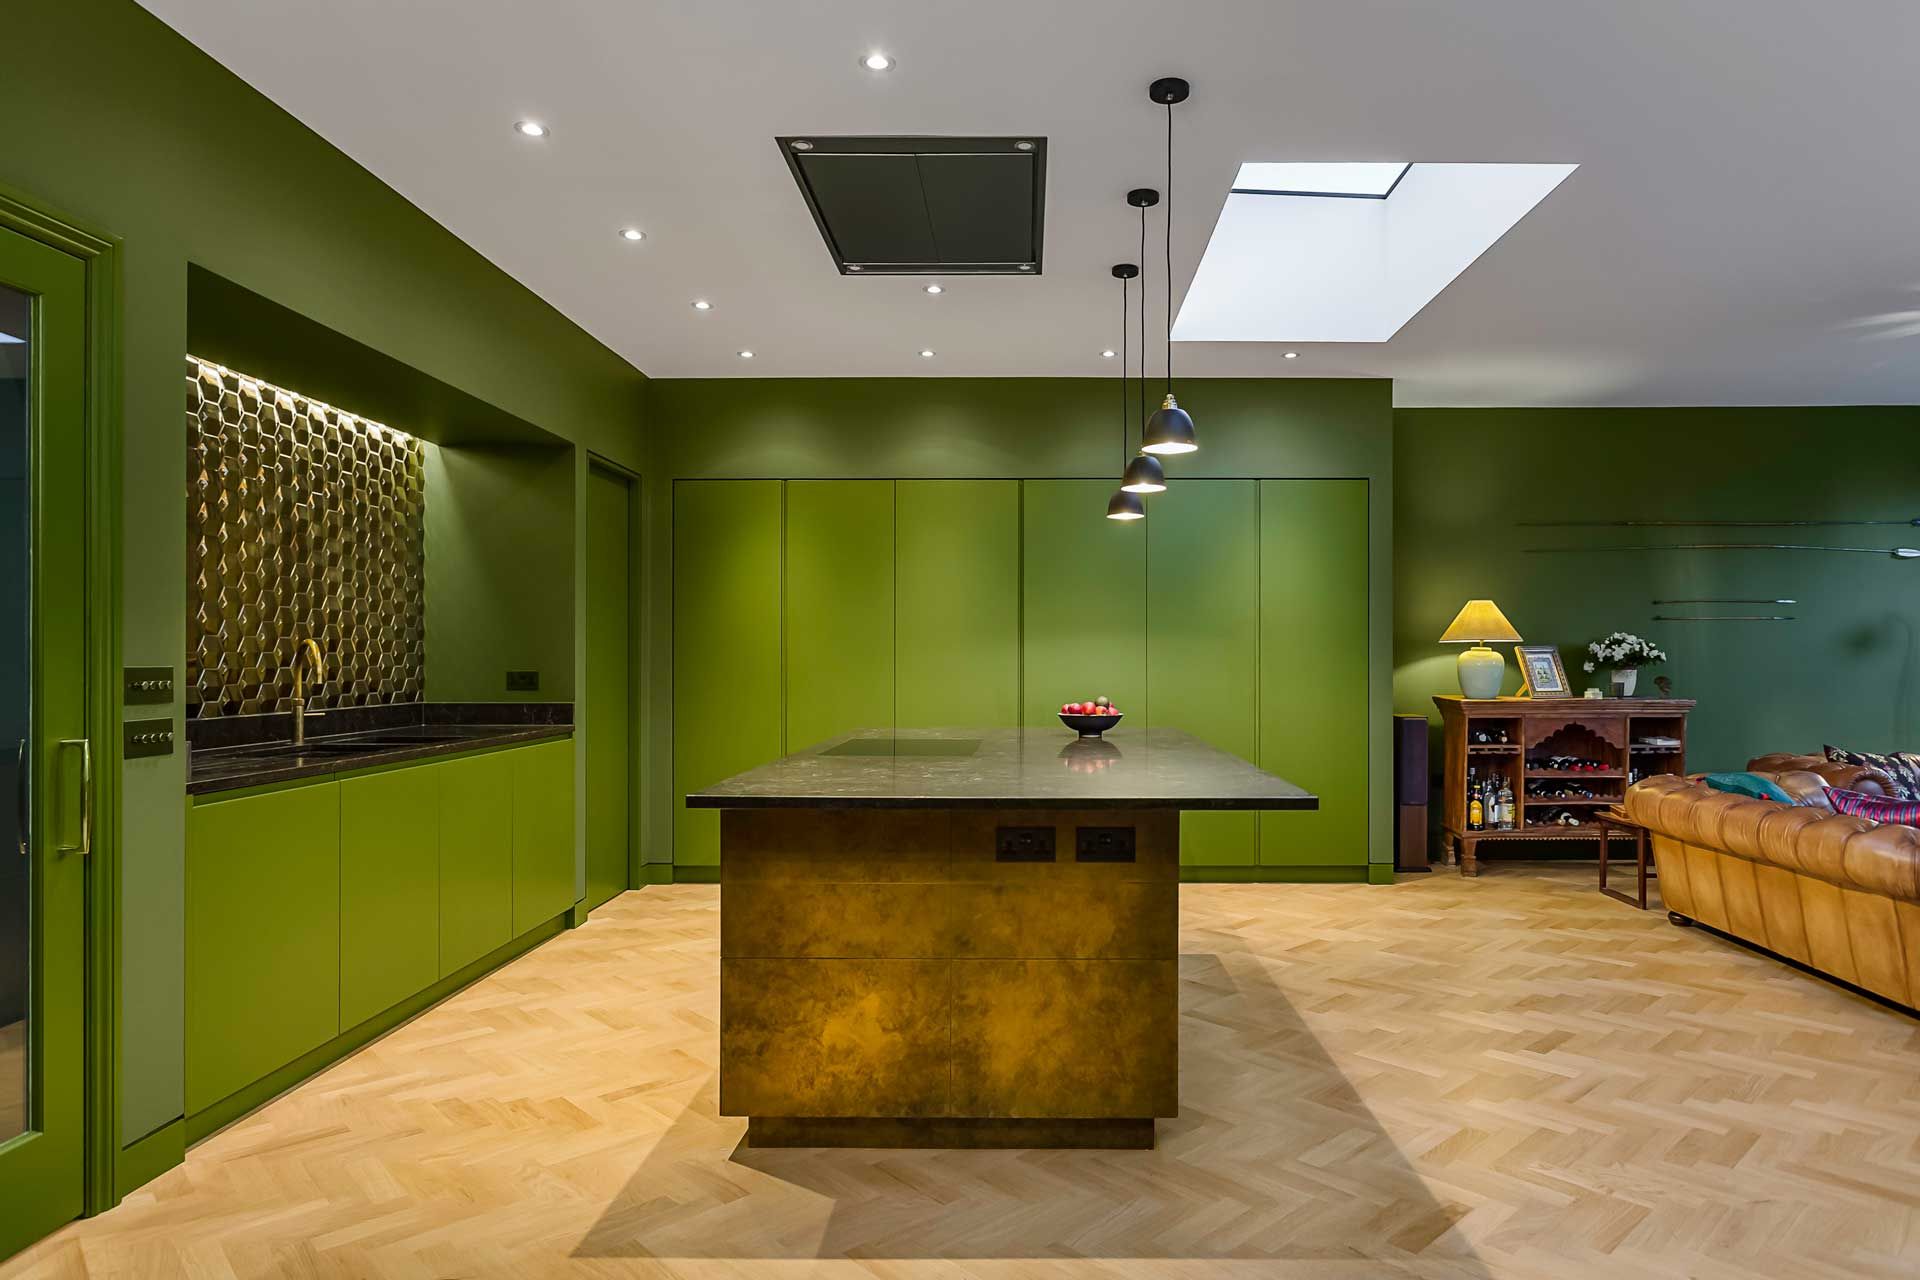 Bolingbroke Grove Wandsworth Kitchen Design 03